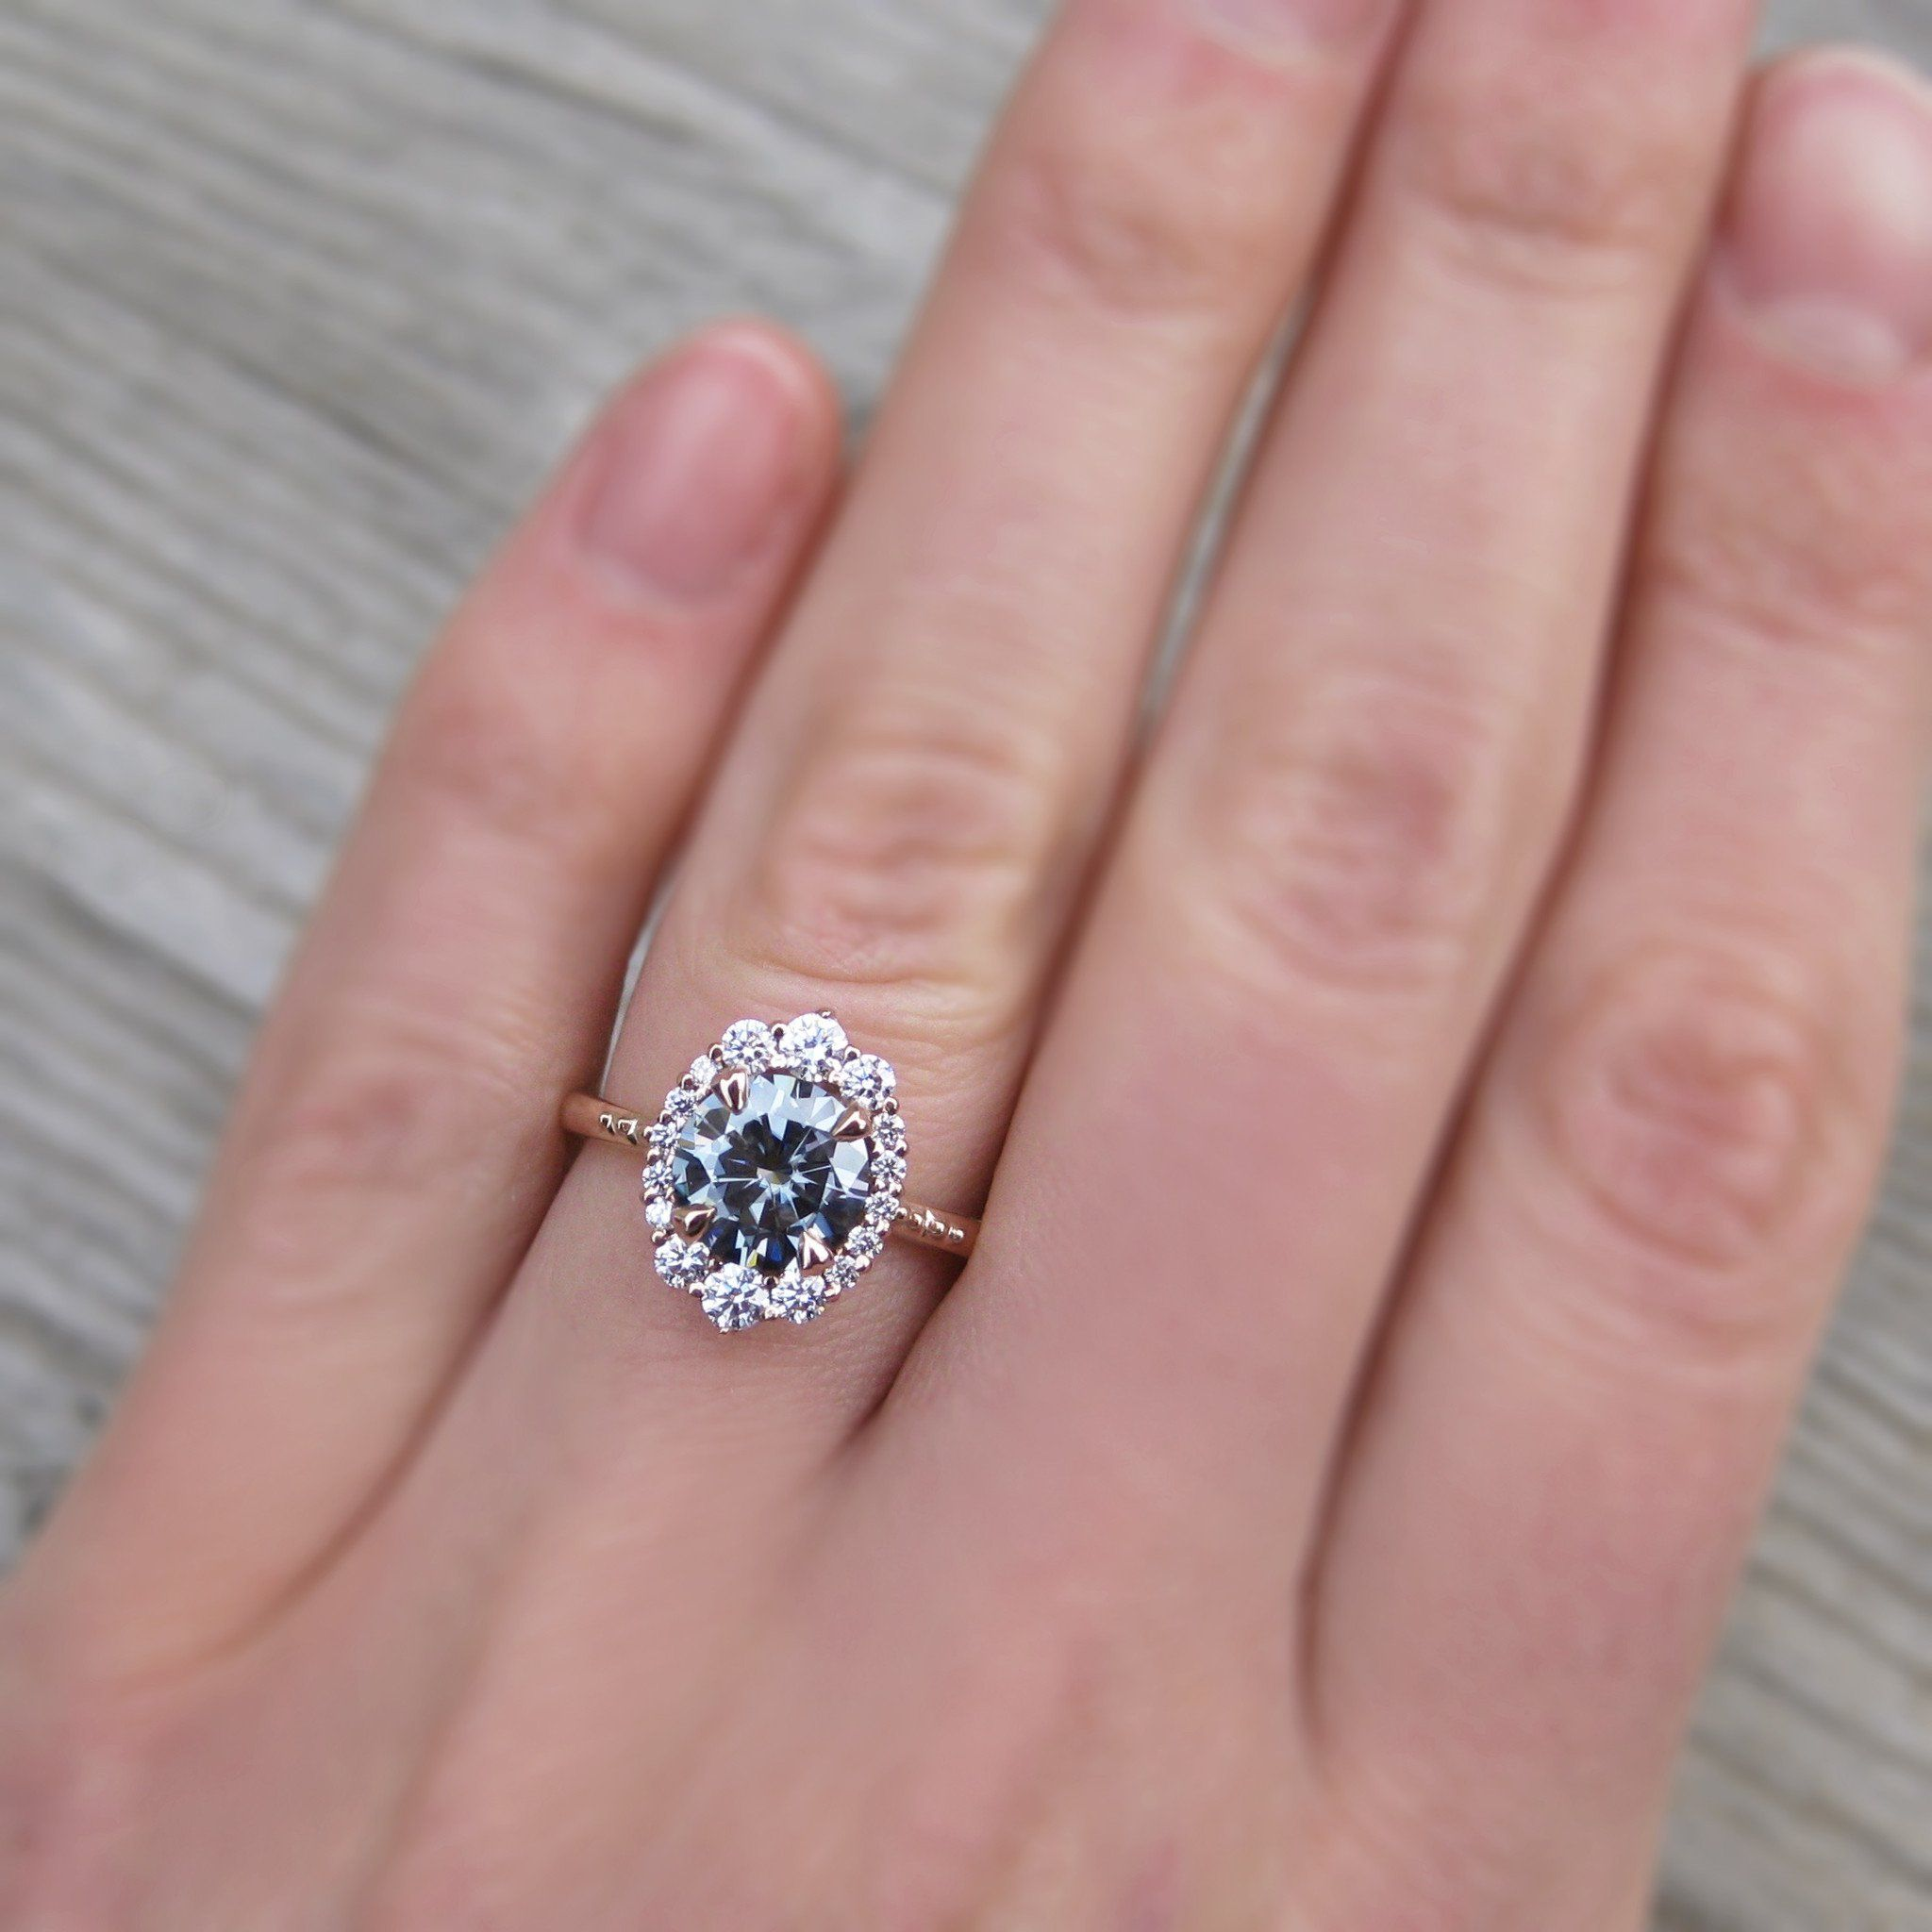 Low profile grey moissanite vintage halo ring in rose gold | düğün ...